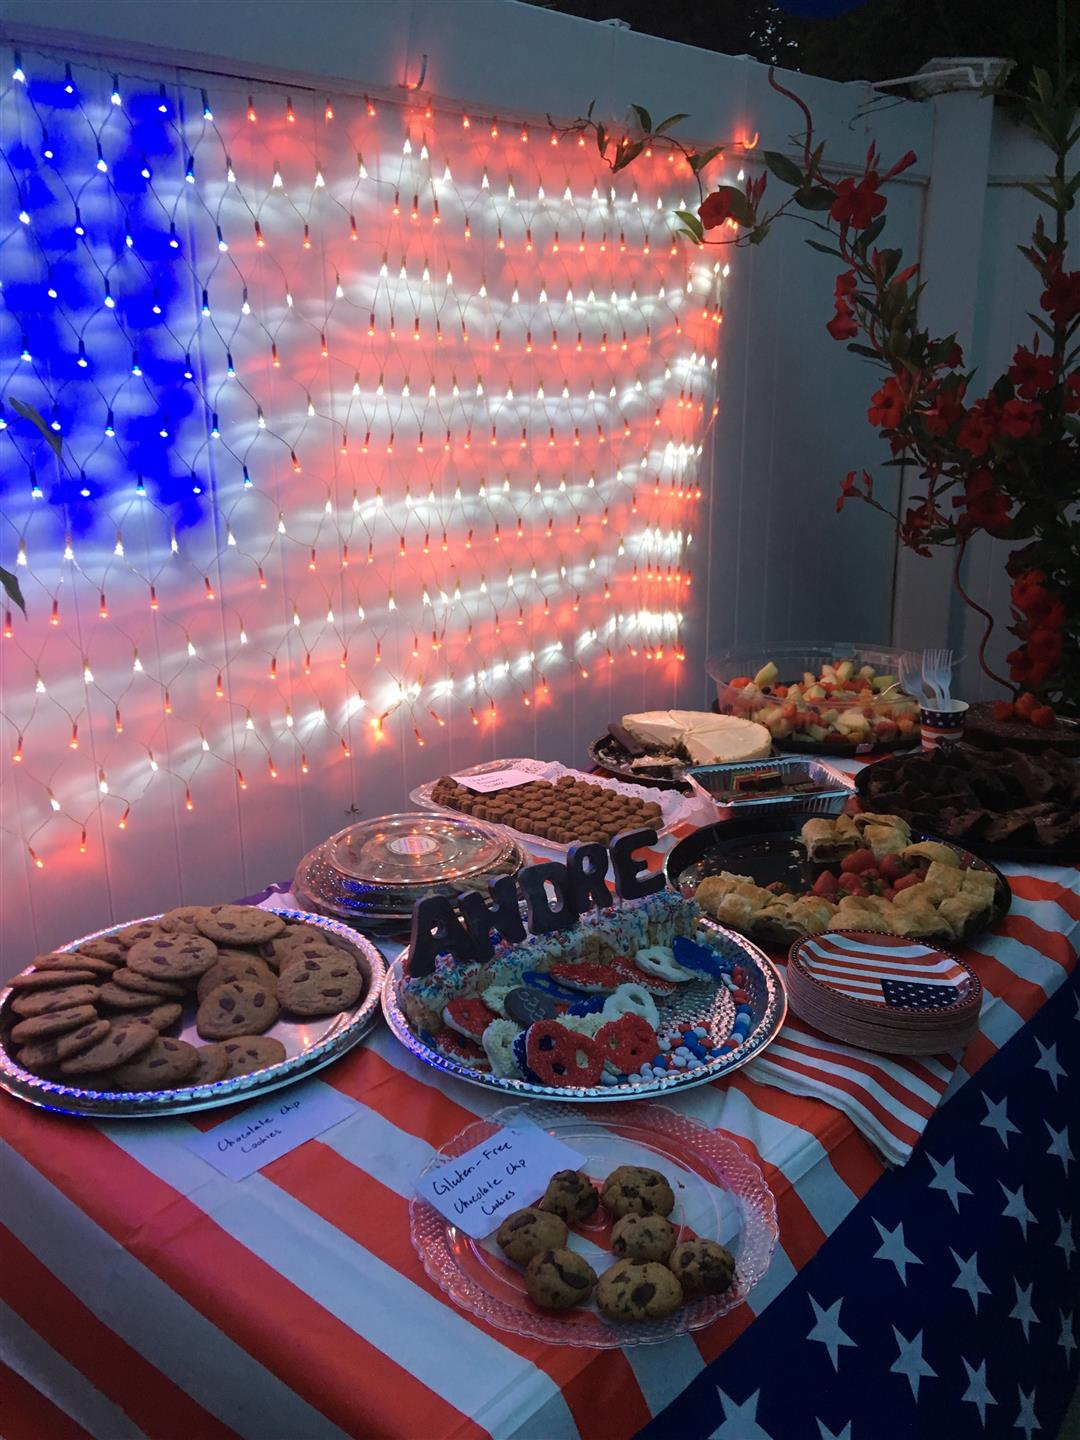 table of assorted cookies and desserts, with american flag in lights behind table